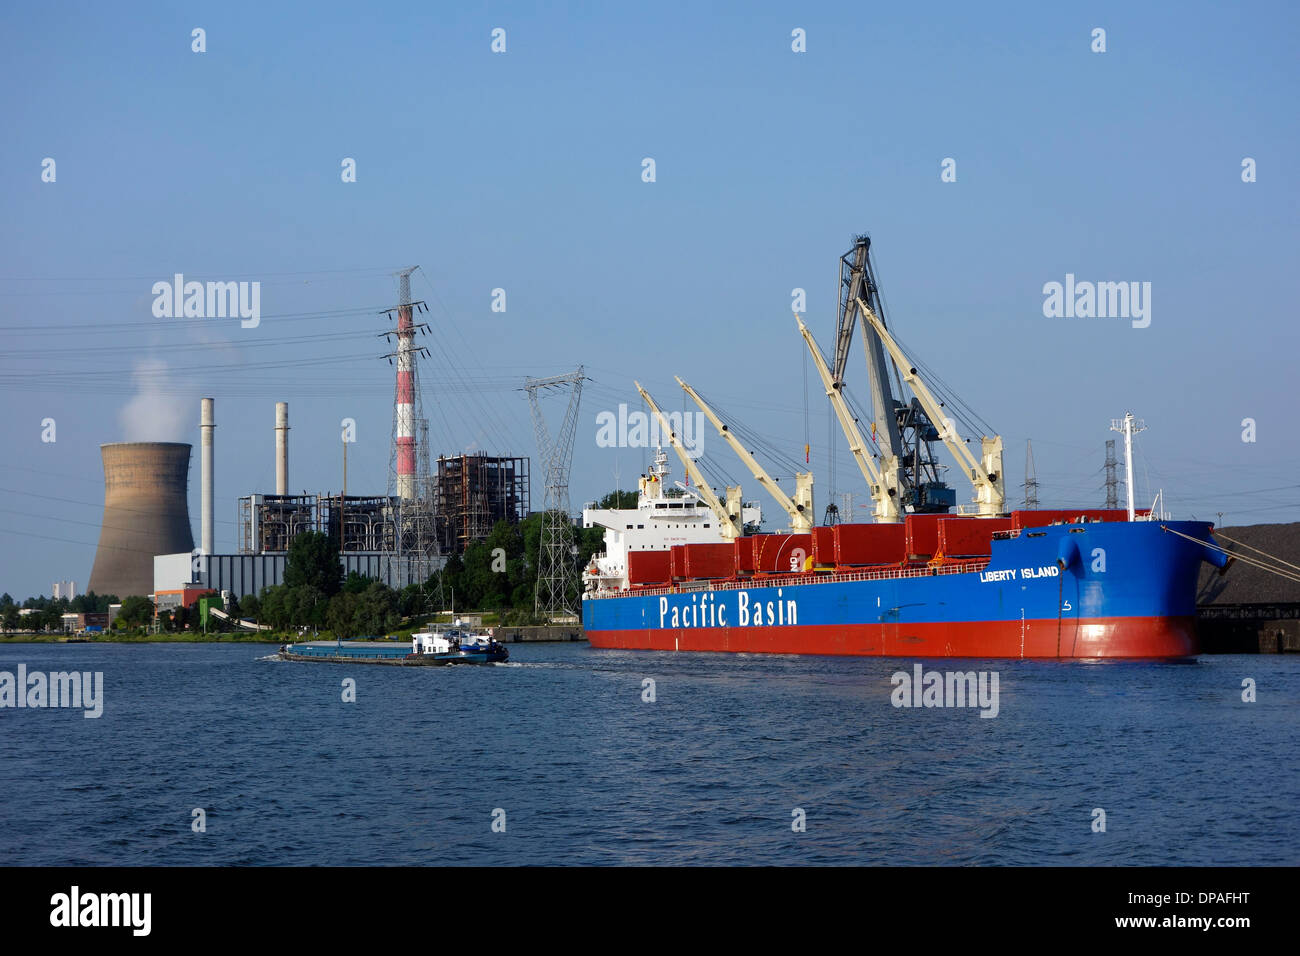 Electrabel power station and bulk carrier docked at SEA-invest / Ghent Coal Terminal at Ghent seaport, East Flanders, - Stock Image